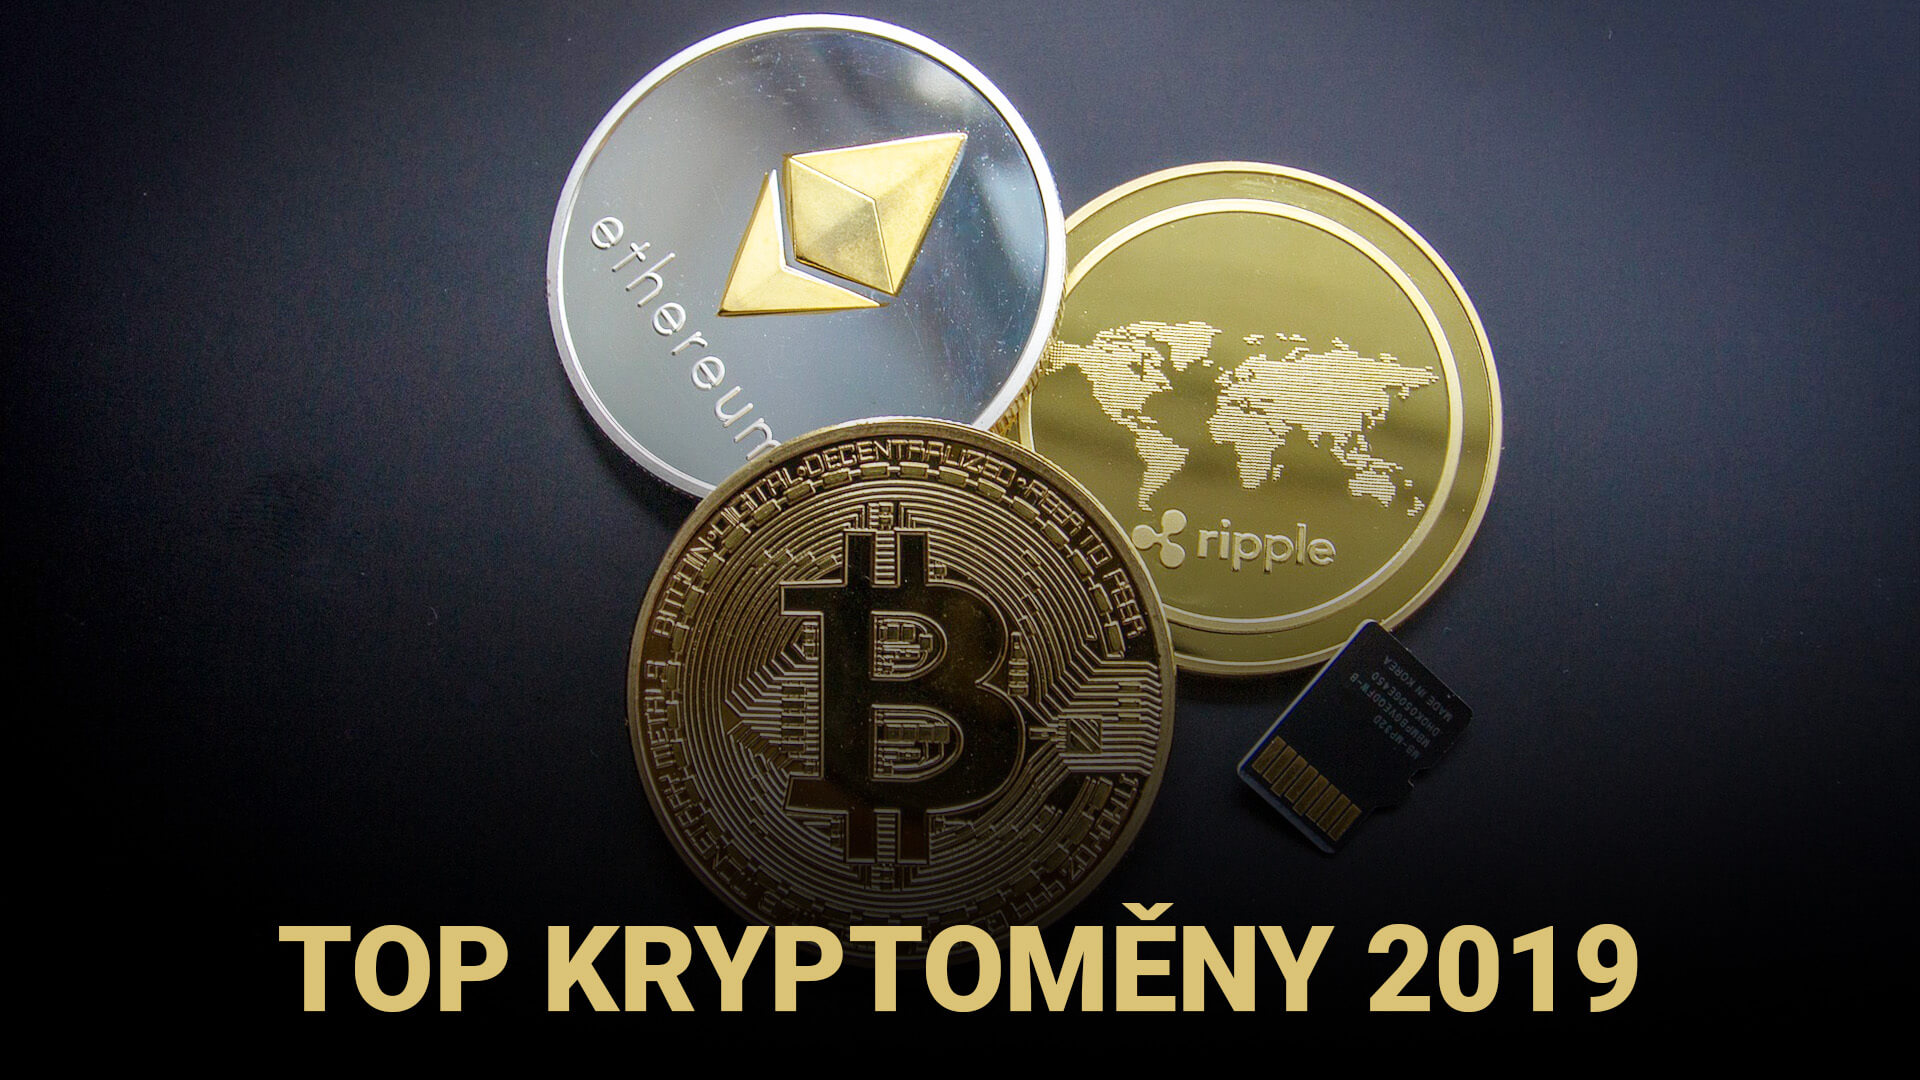 Top kryptoměny  2019 image